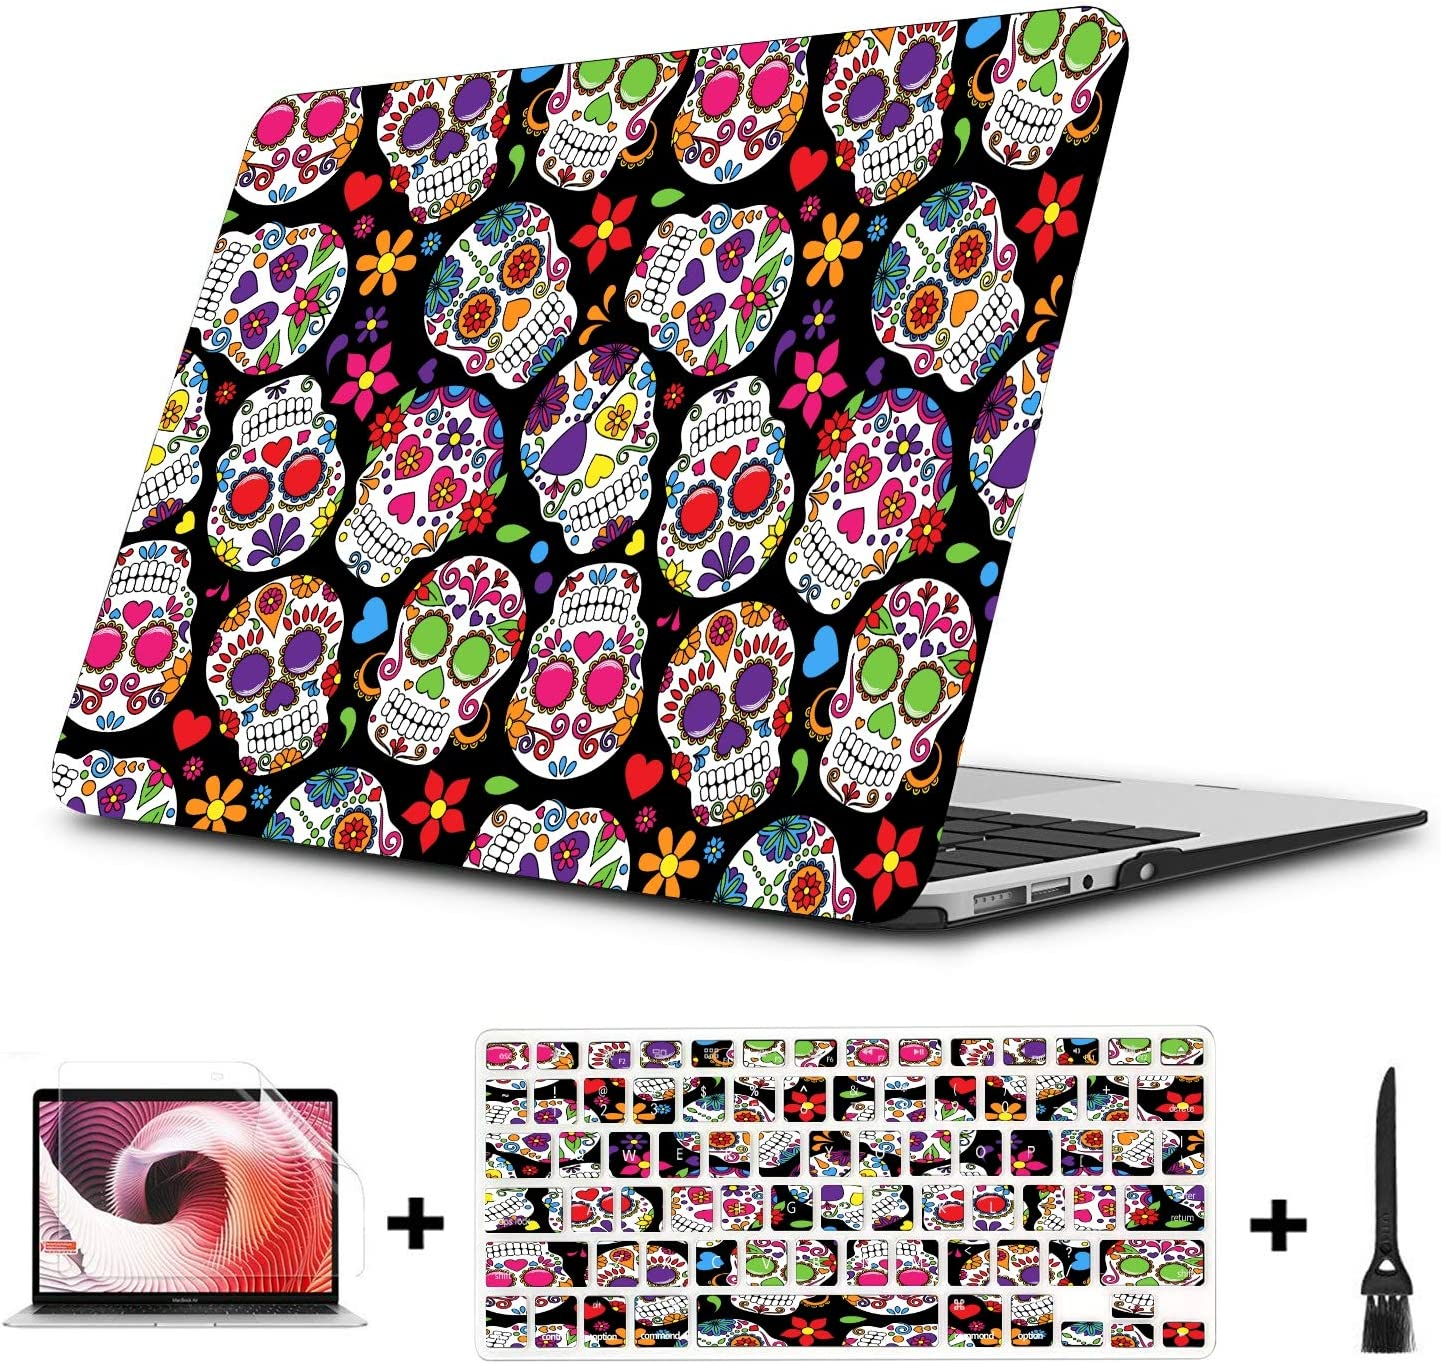 New Air13 // Air13 // Pro13 // Pro15 Laptop Case for MacBook Hip Hop Grate-ful Dead Dancing Bear Laptop Computer Hard Shell Cases Cover